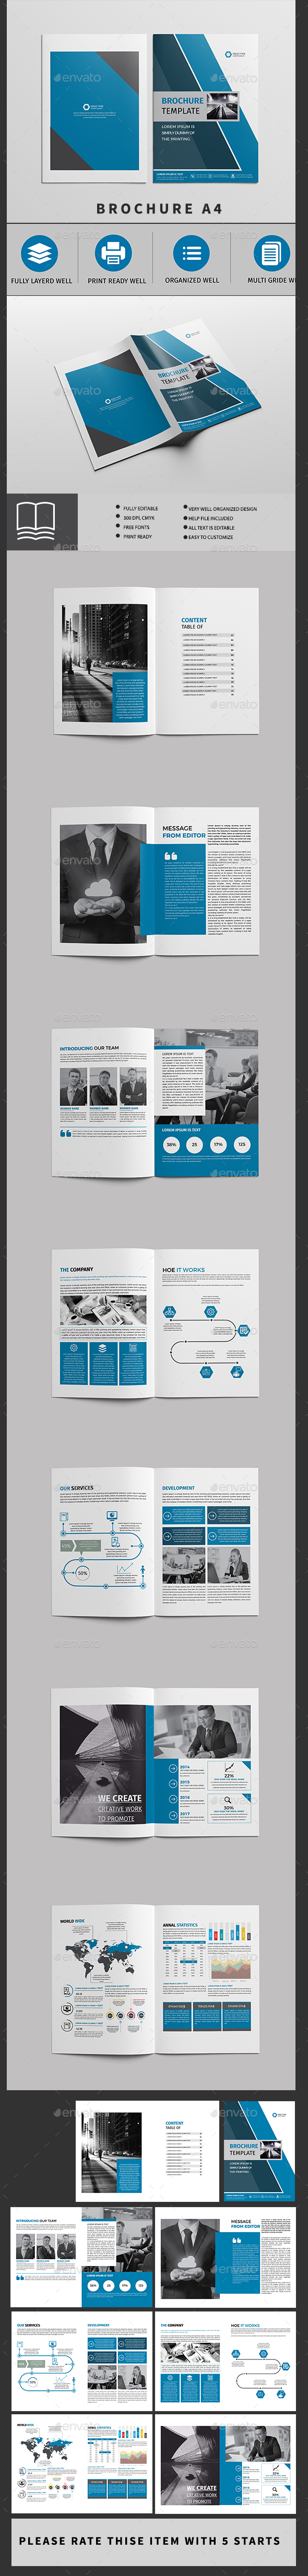 Brochure Template 16 Page - Brochures Print Templates